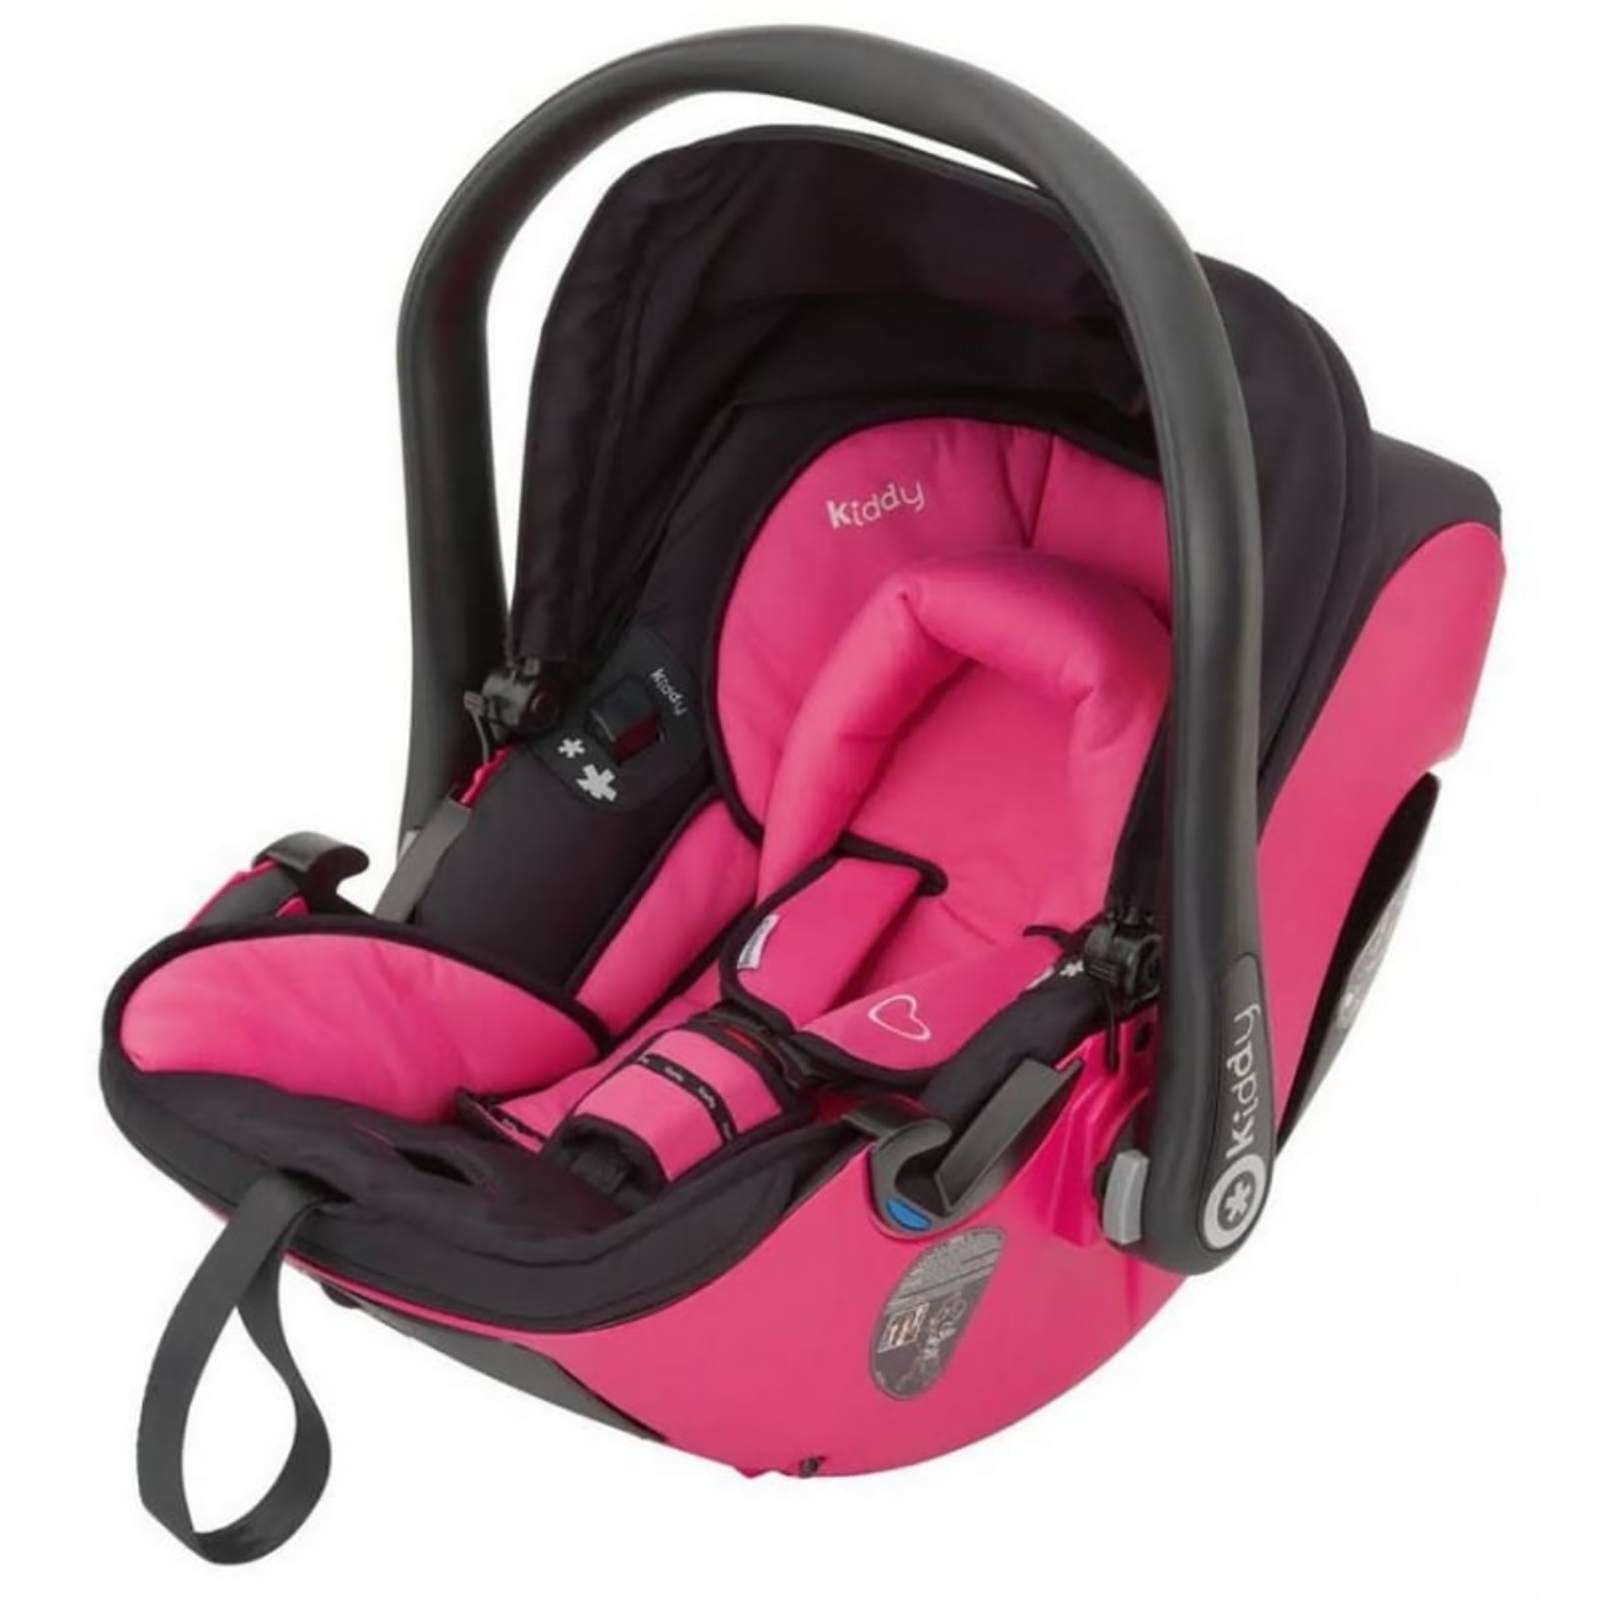 Infant Rocker Carrier Kiddy Evolution Pro 2 Group Car Seat Pink